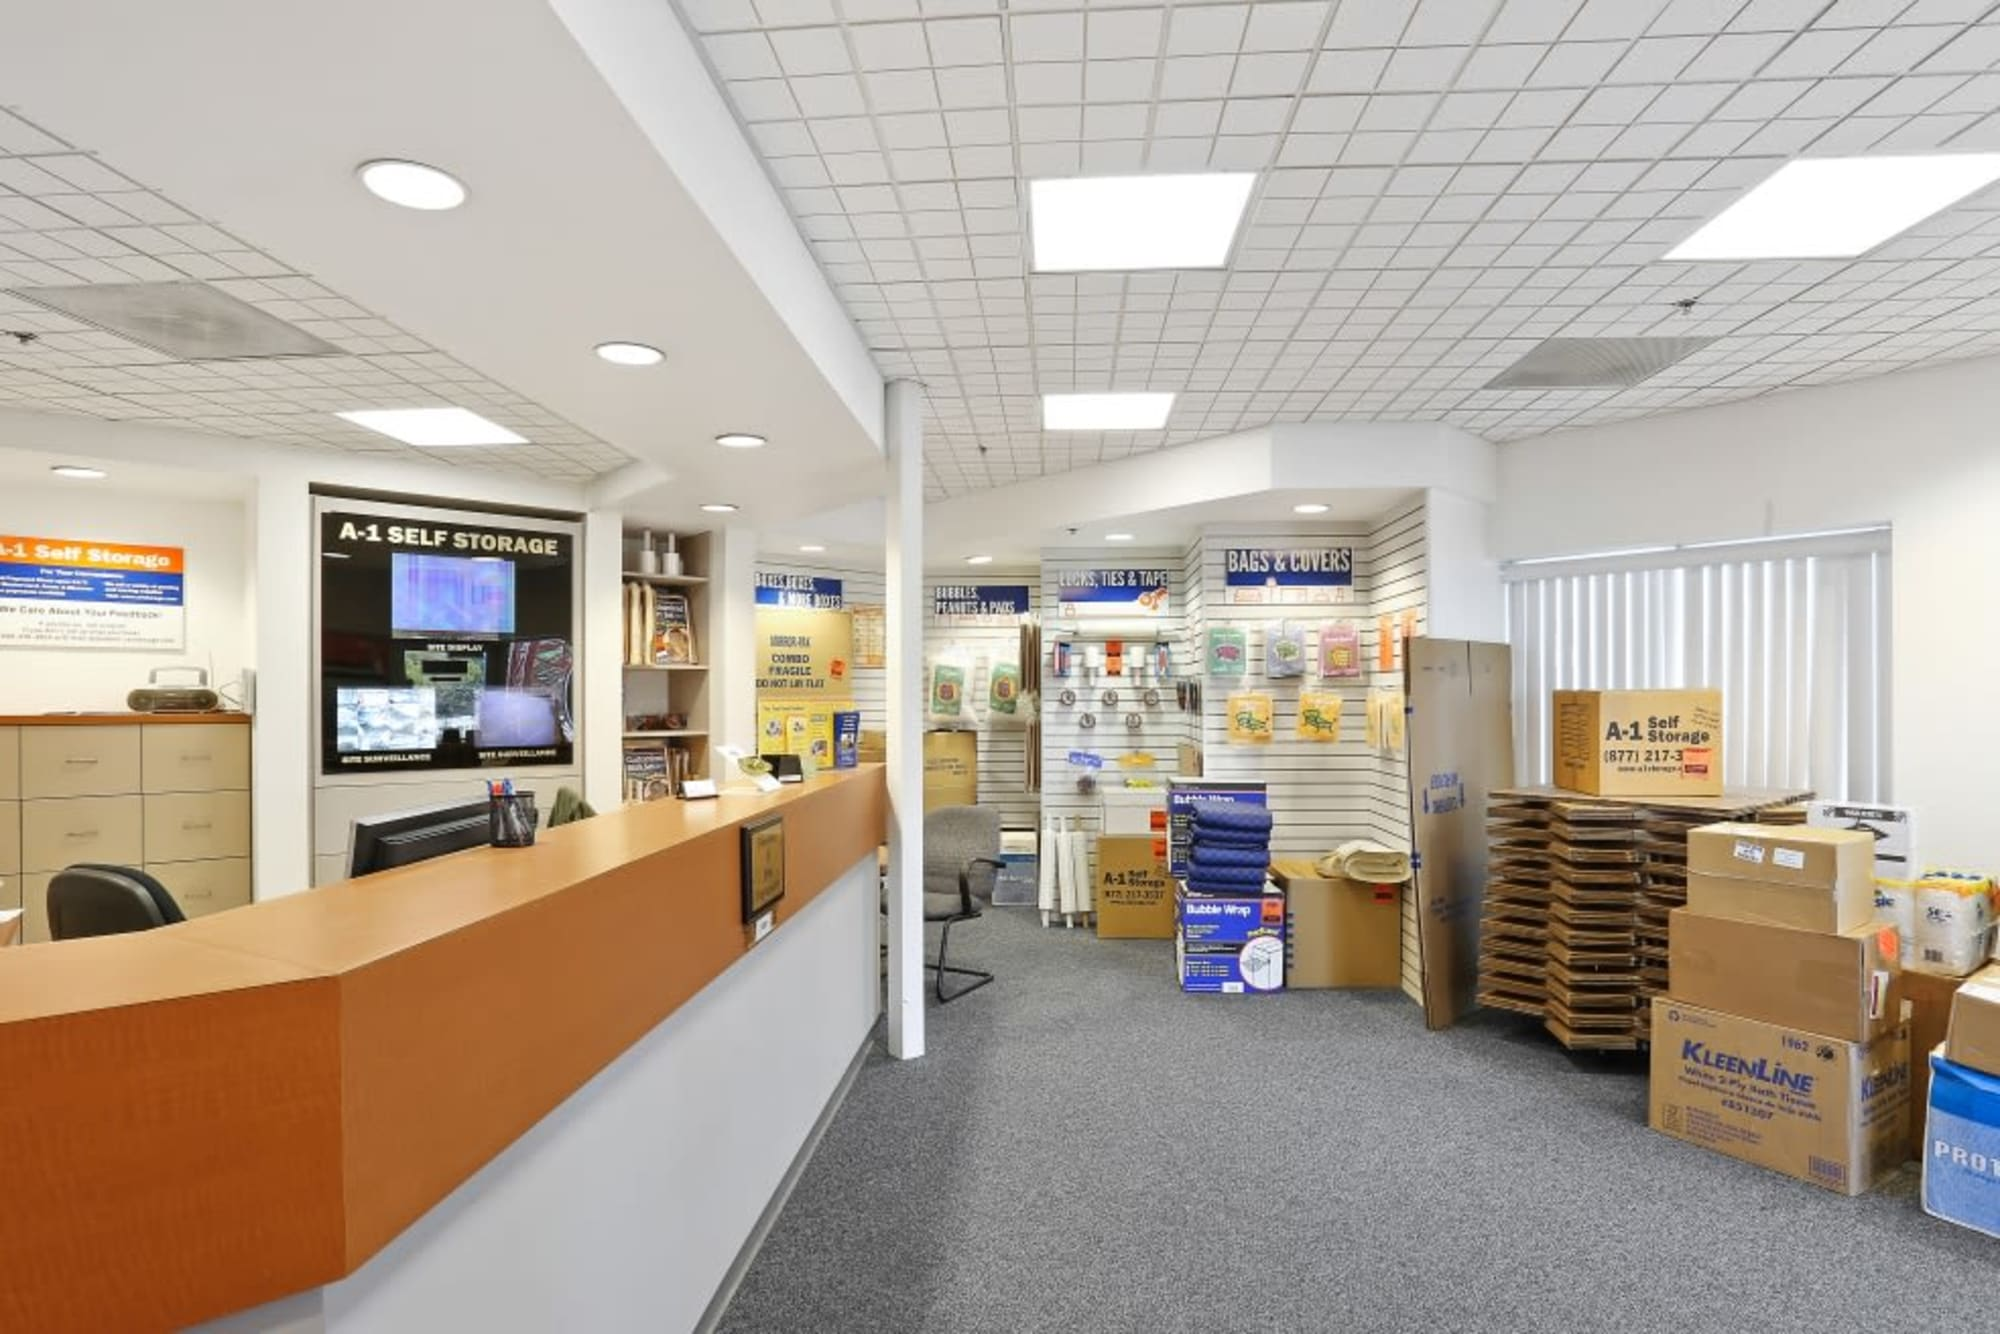 The service desk at A-1 Self Storage in San Diego, California